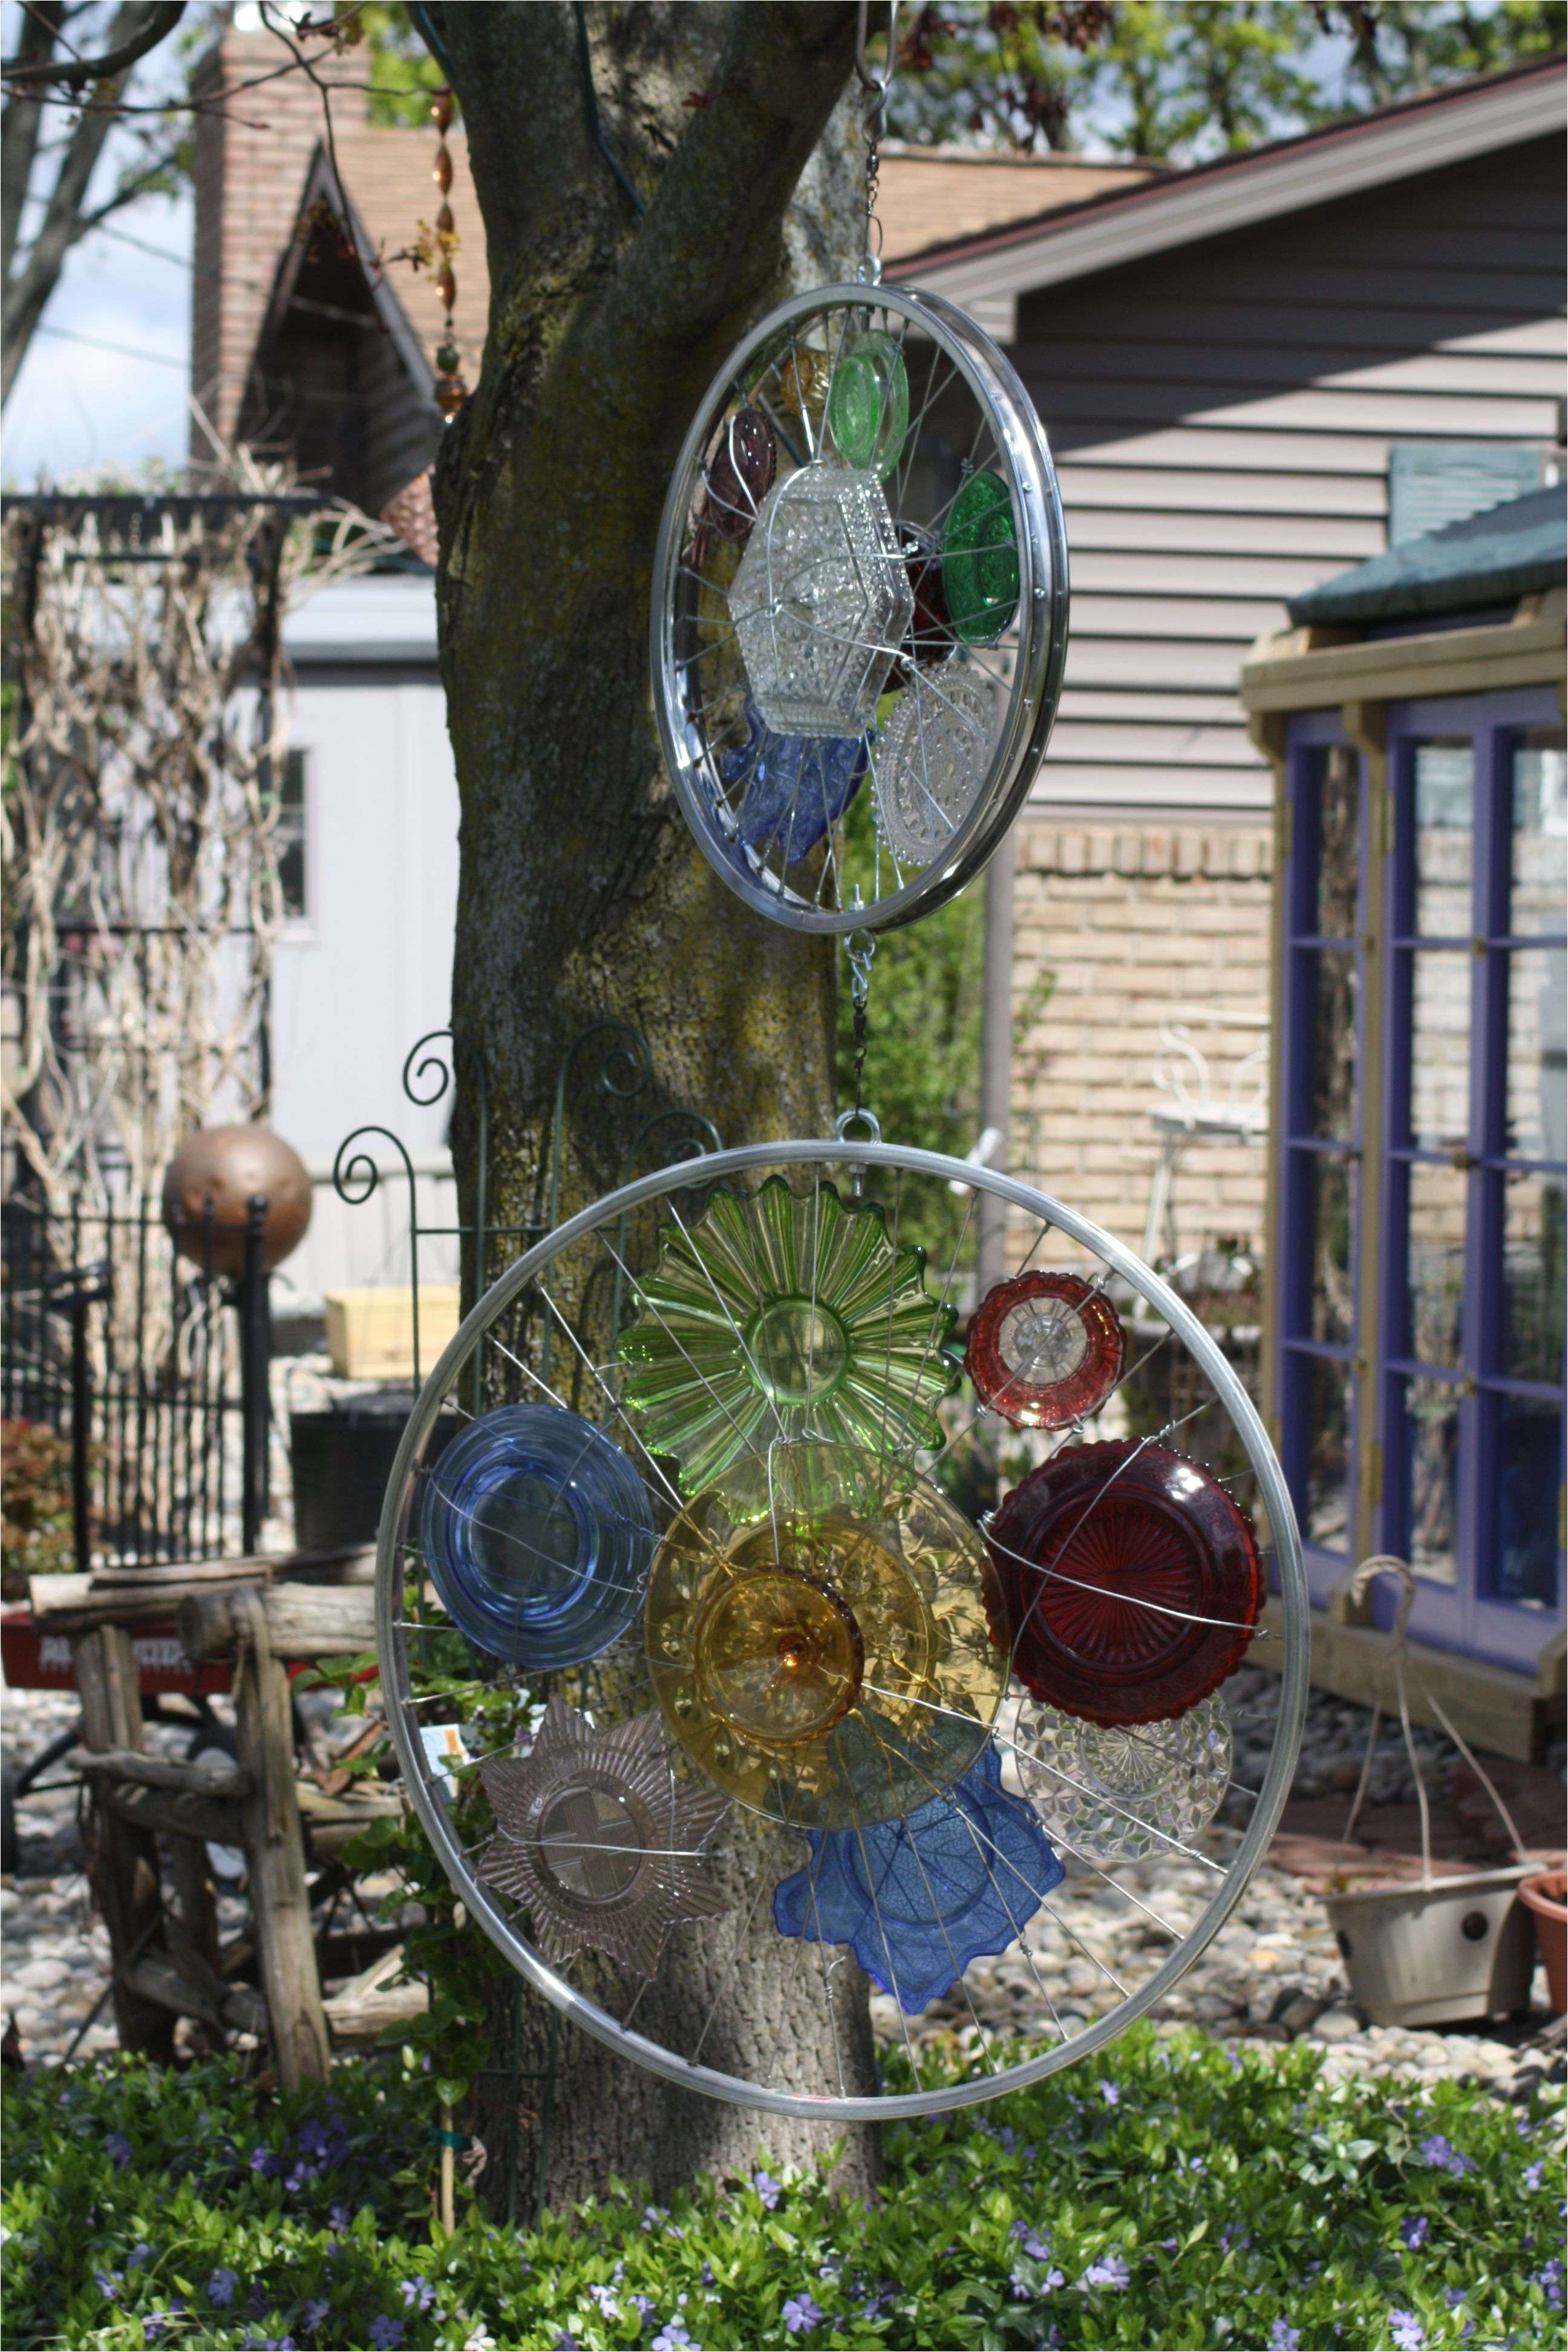 bicycle garden decor ideas 2 bicycle rims feature interesting colored glass pieces each will turn separatly in the wind yard